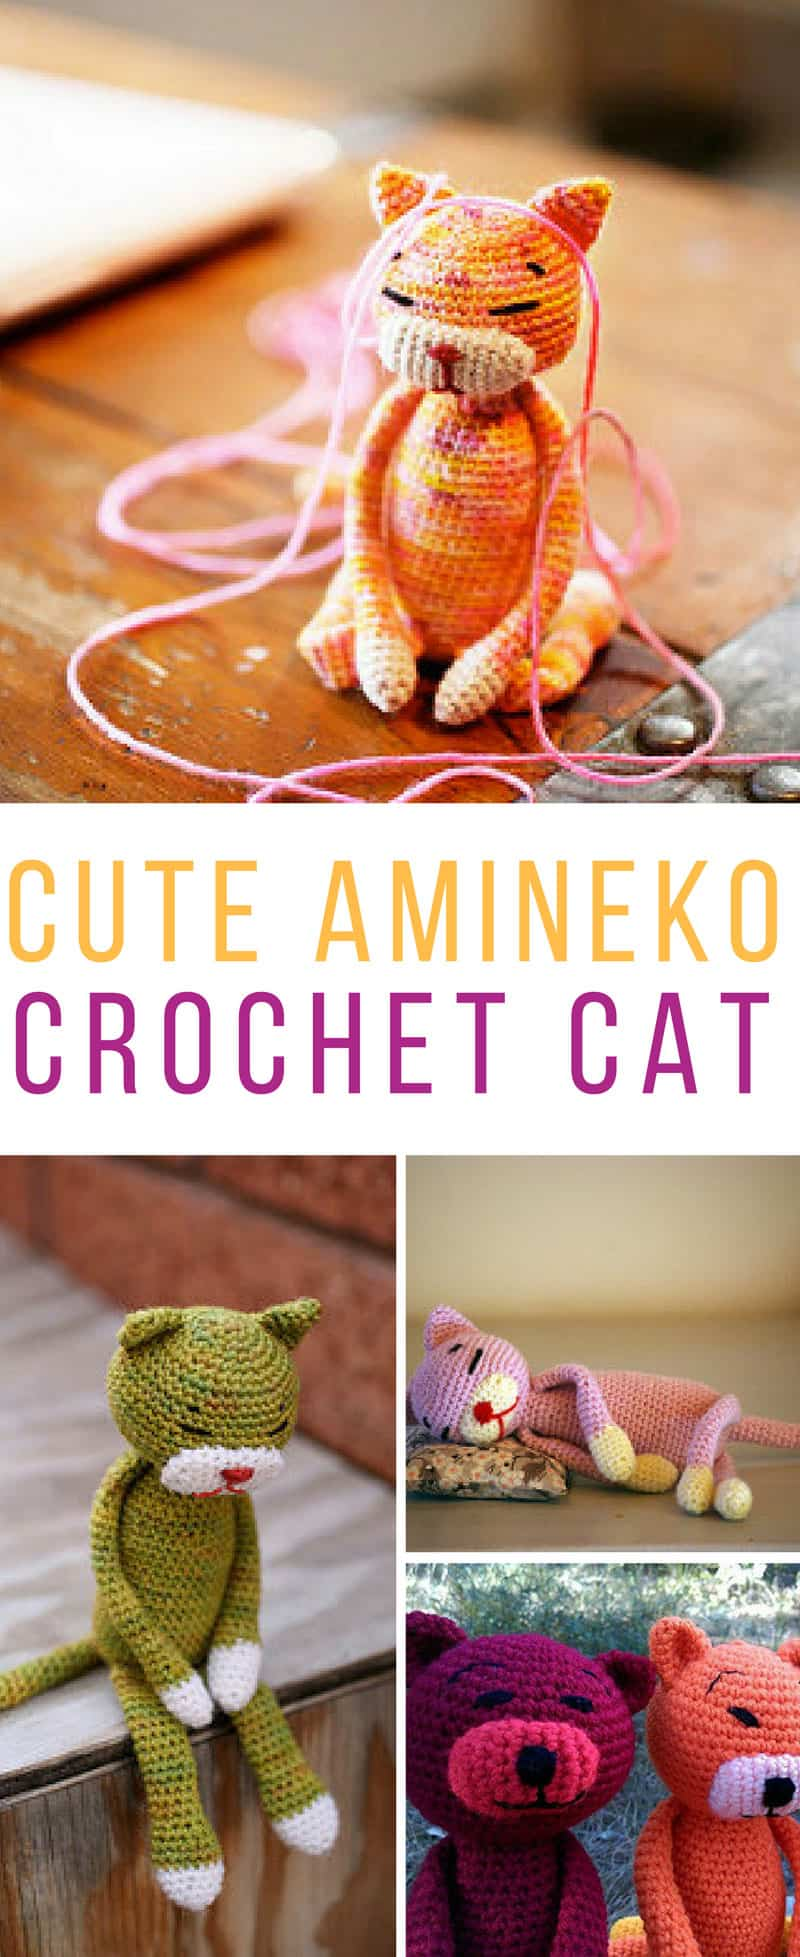 Can't wait to crochet one of these Amineko cats! Thanks for sharing the free pattern!